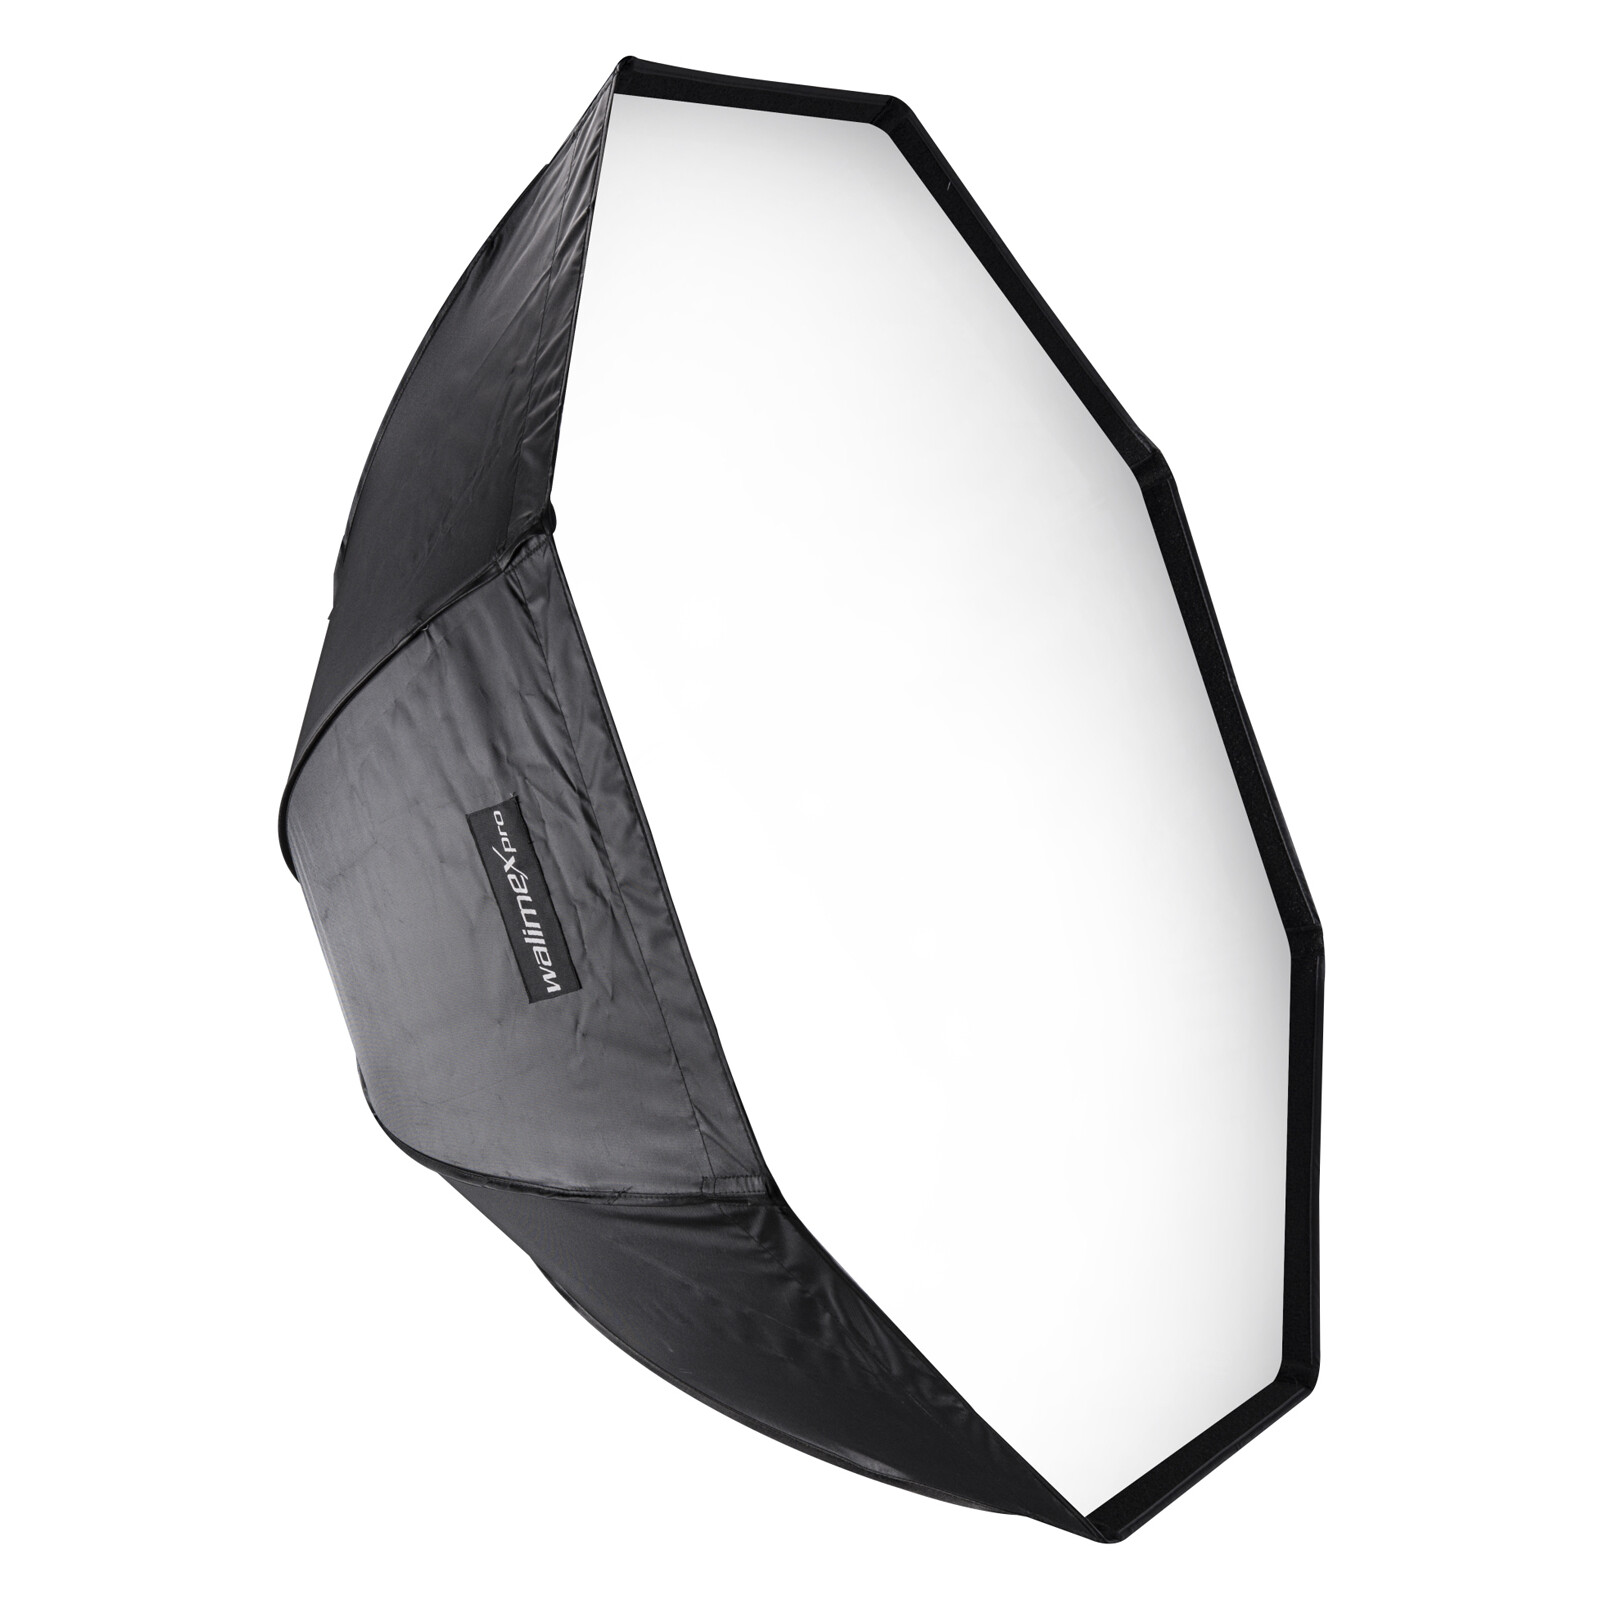 walimex pro easy Softbox Ø90cm Profoto